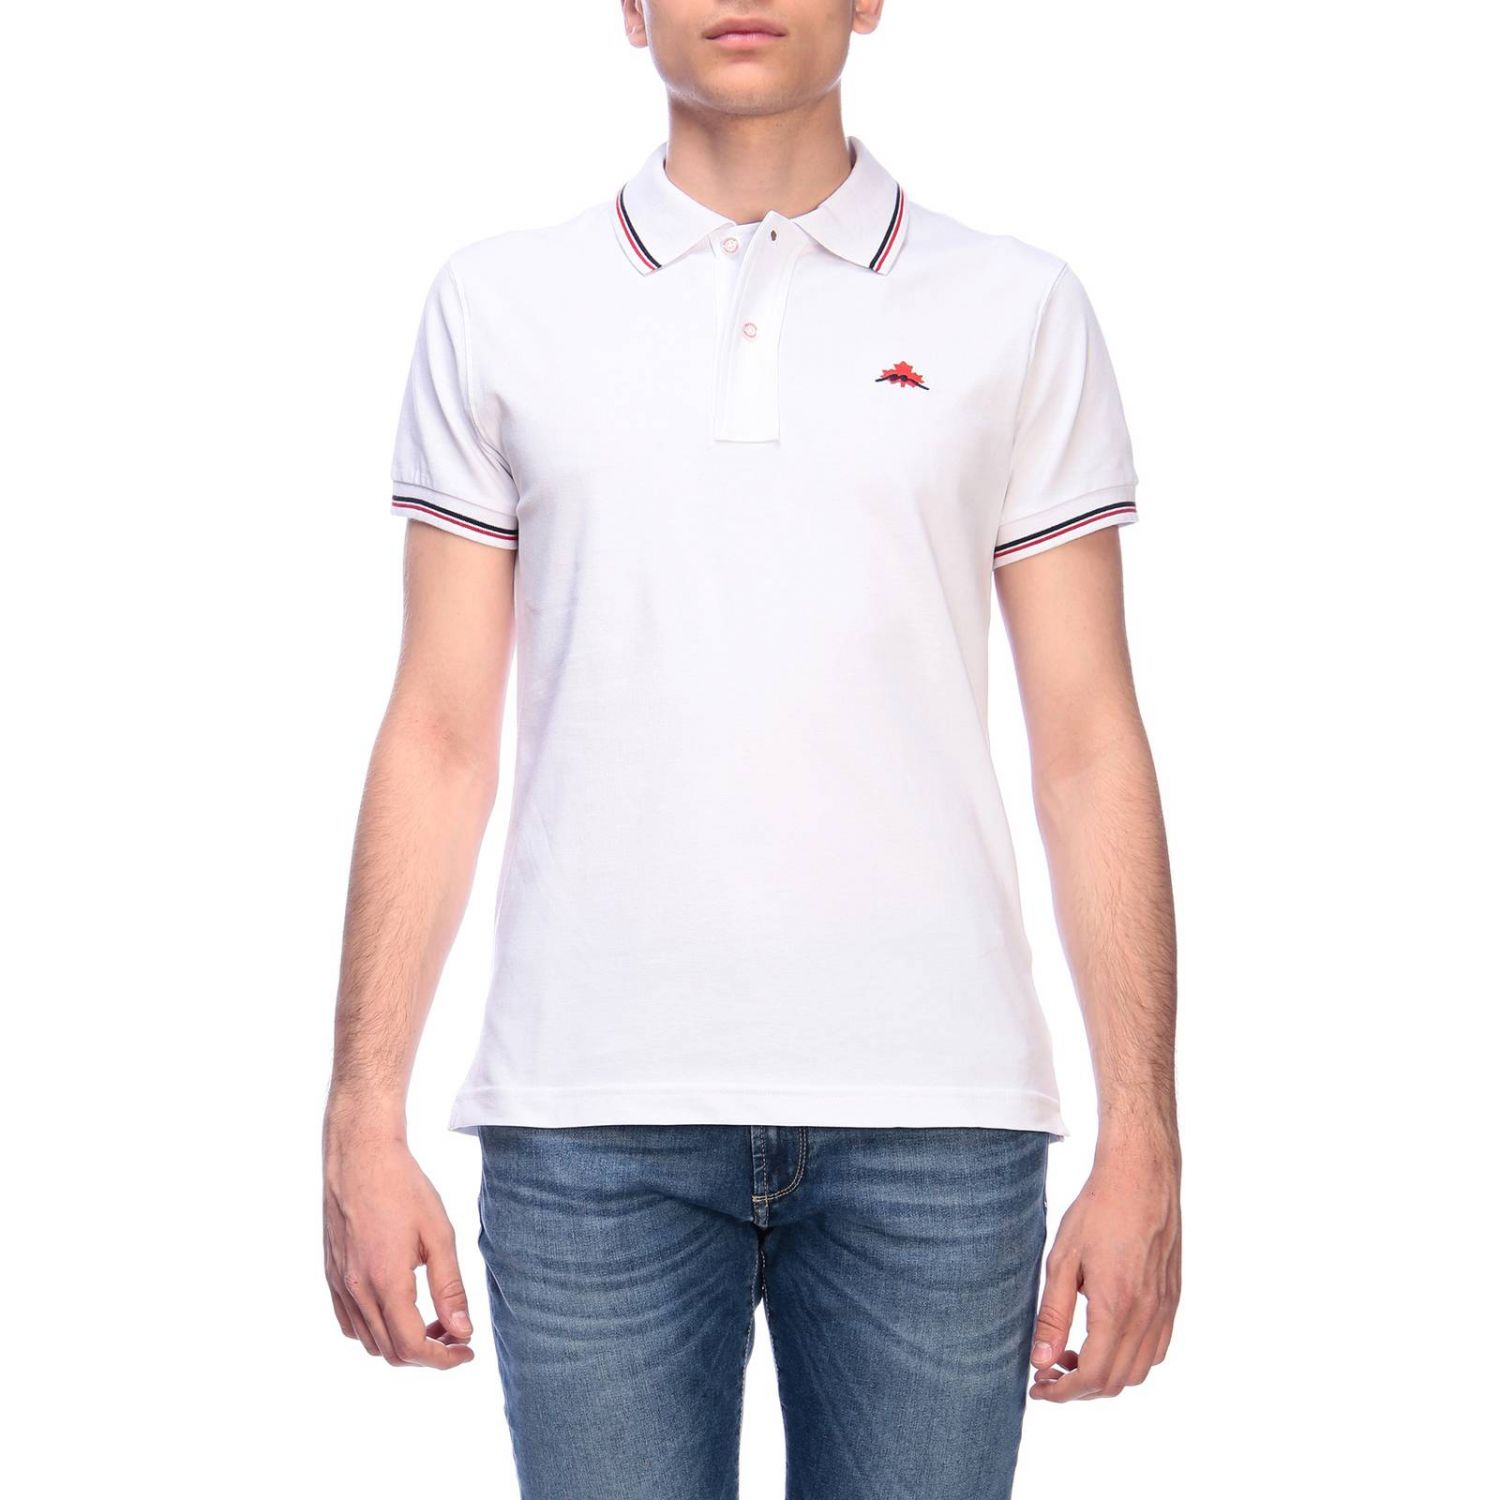 T-shirt men Museum white 1